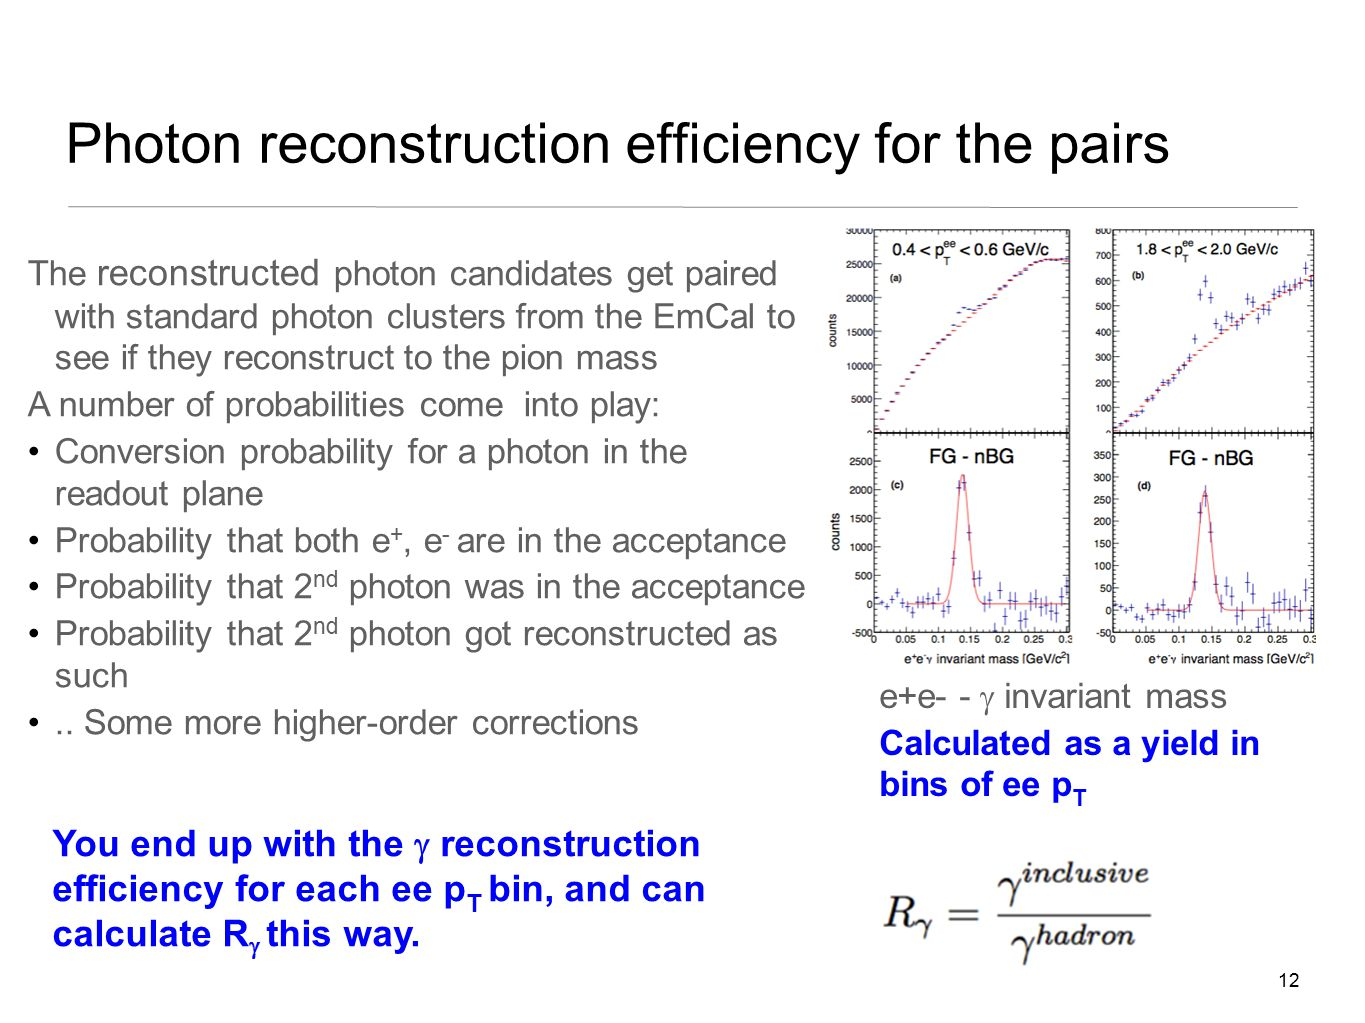 12 Photon reconstruction efficiency for the pairs The reconstructed photon candidates get paired with standard photon clusters from the EmCal to see if they reconstruct to the pion mass A number of probabilities come into play: Conversion probability for a photon in the readout plane Probability that both e +, e - are in the acceptance Probability that 2 nd photon was in the acceptance Probability that 2 nd photon got reconstructed as such..